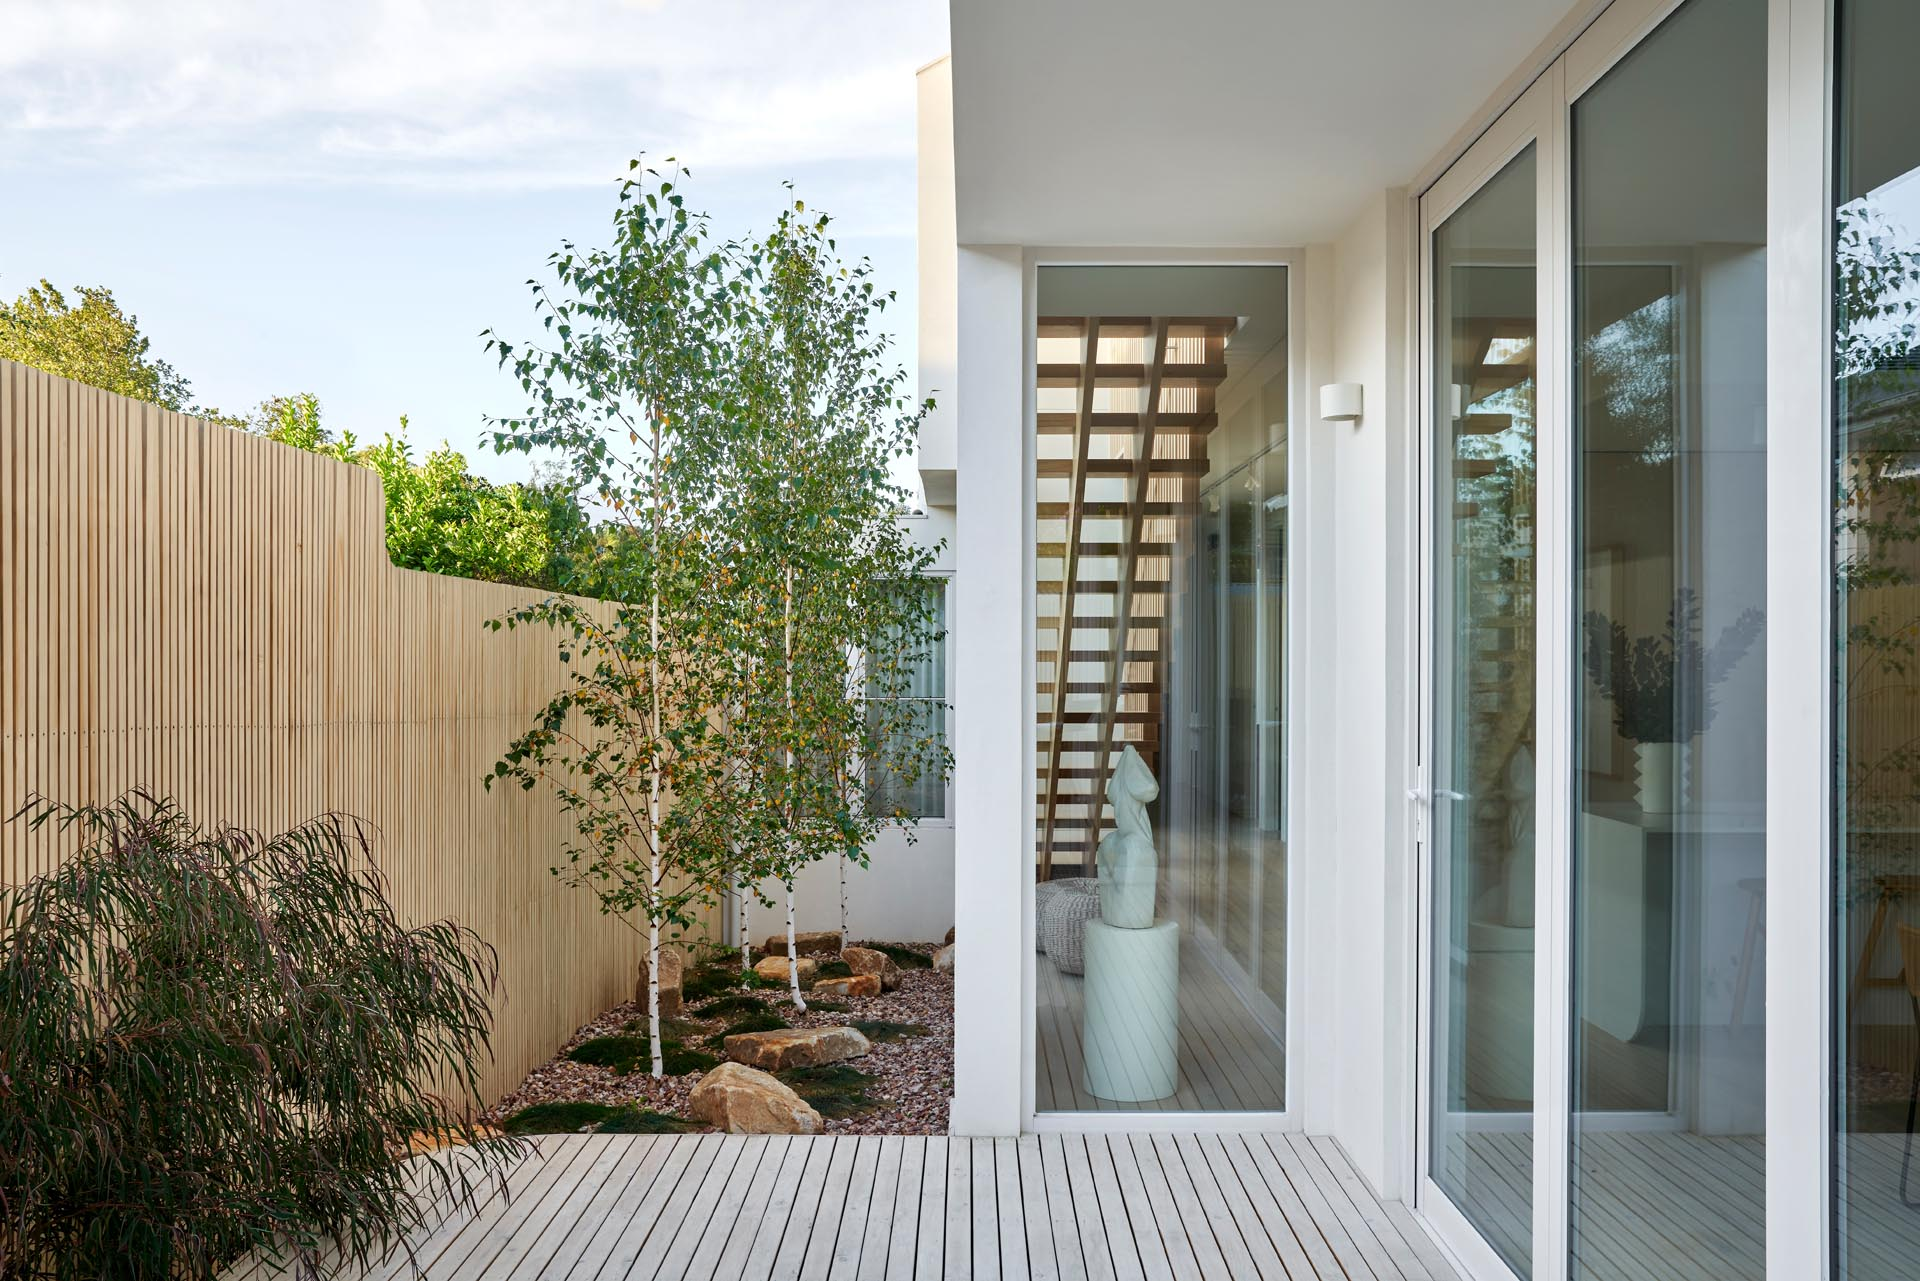 A modern house with a side garden that features a light wood fence, stones, grasses, and trees.